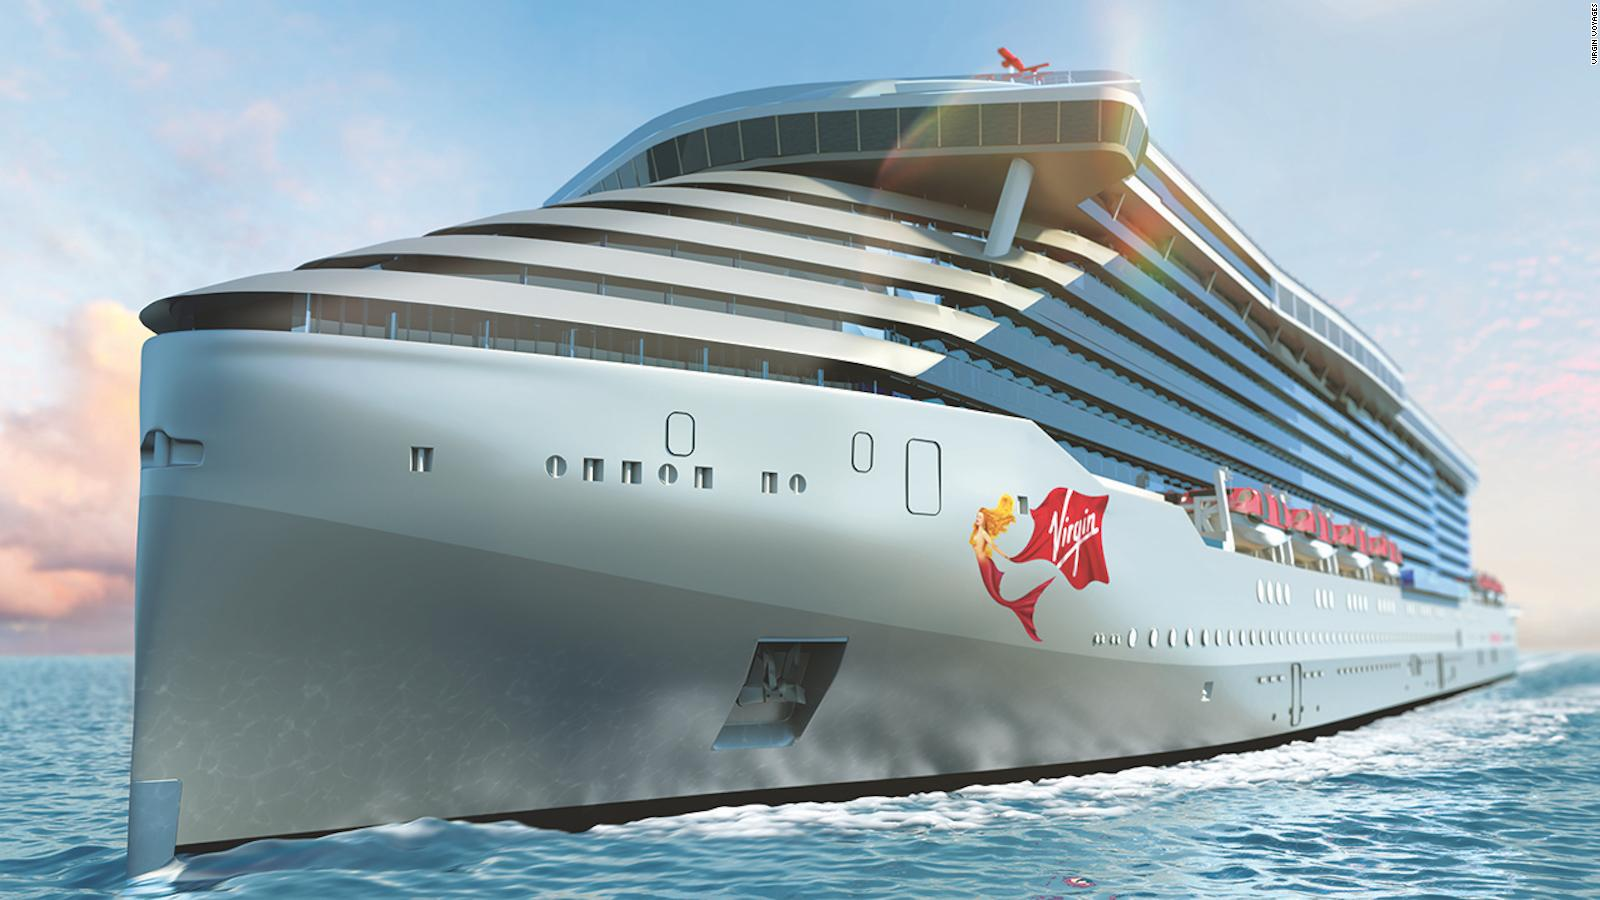 Richard Branson Launches Scarlet Lady Virgin S Luxury Adults Only Cruise Ship Cnn